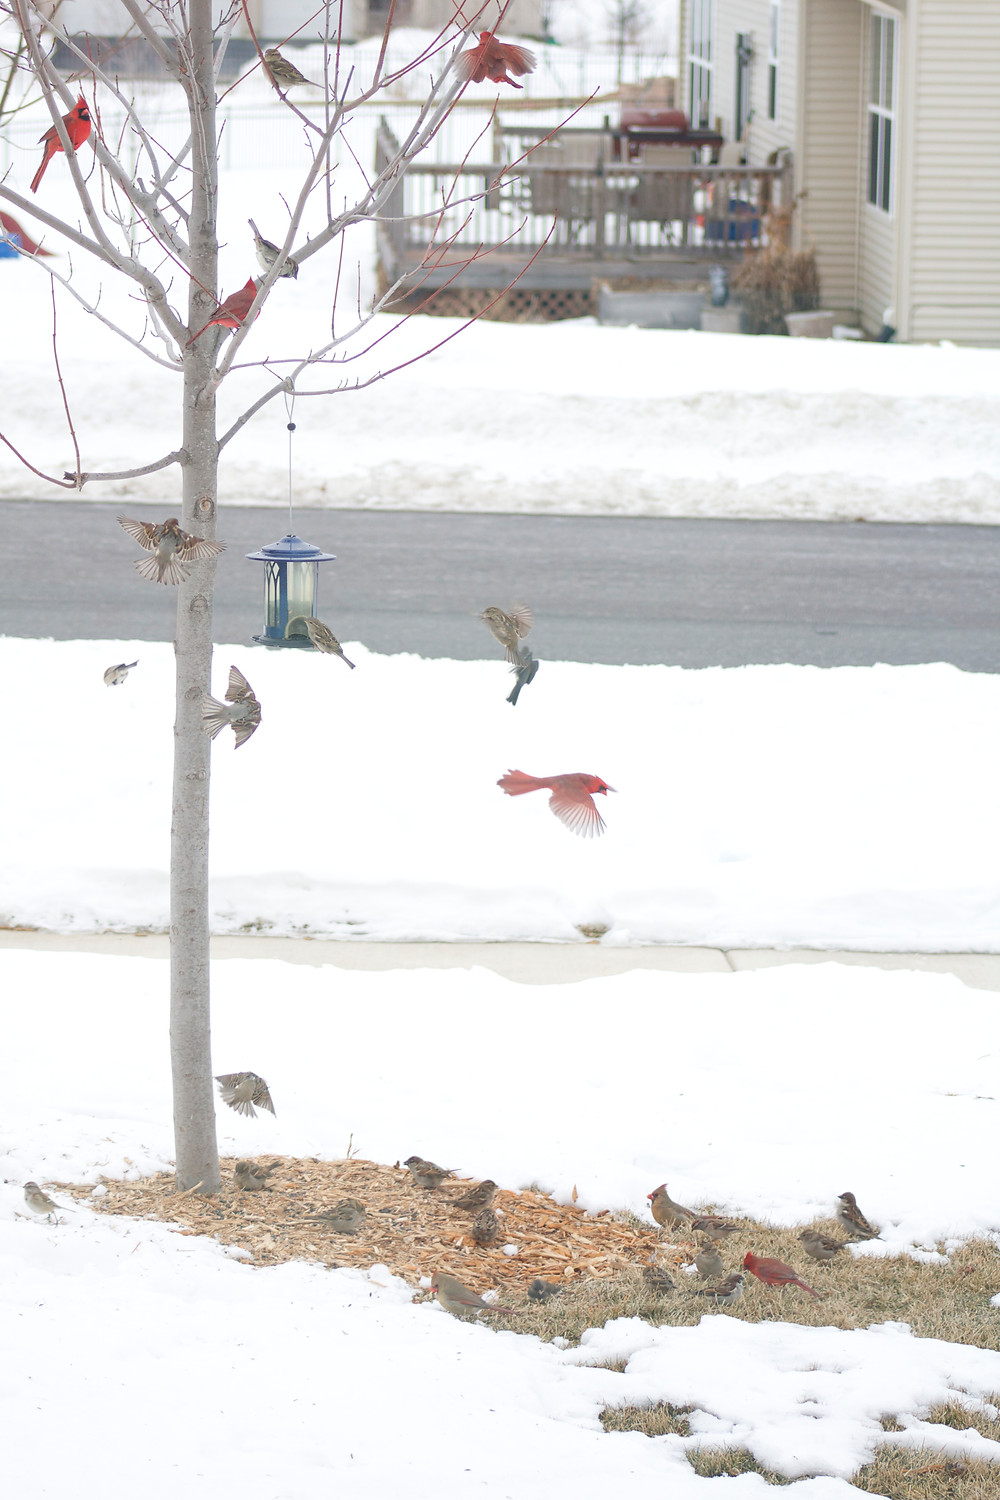 Birds flocking at Blue Sky Daycare home daycare during the Great Backyard Bird Count 2015